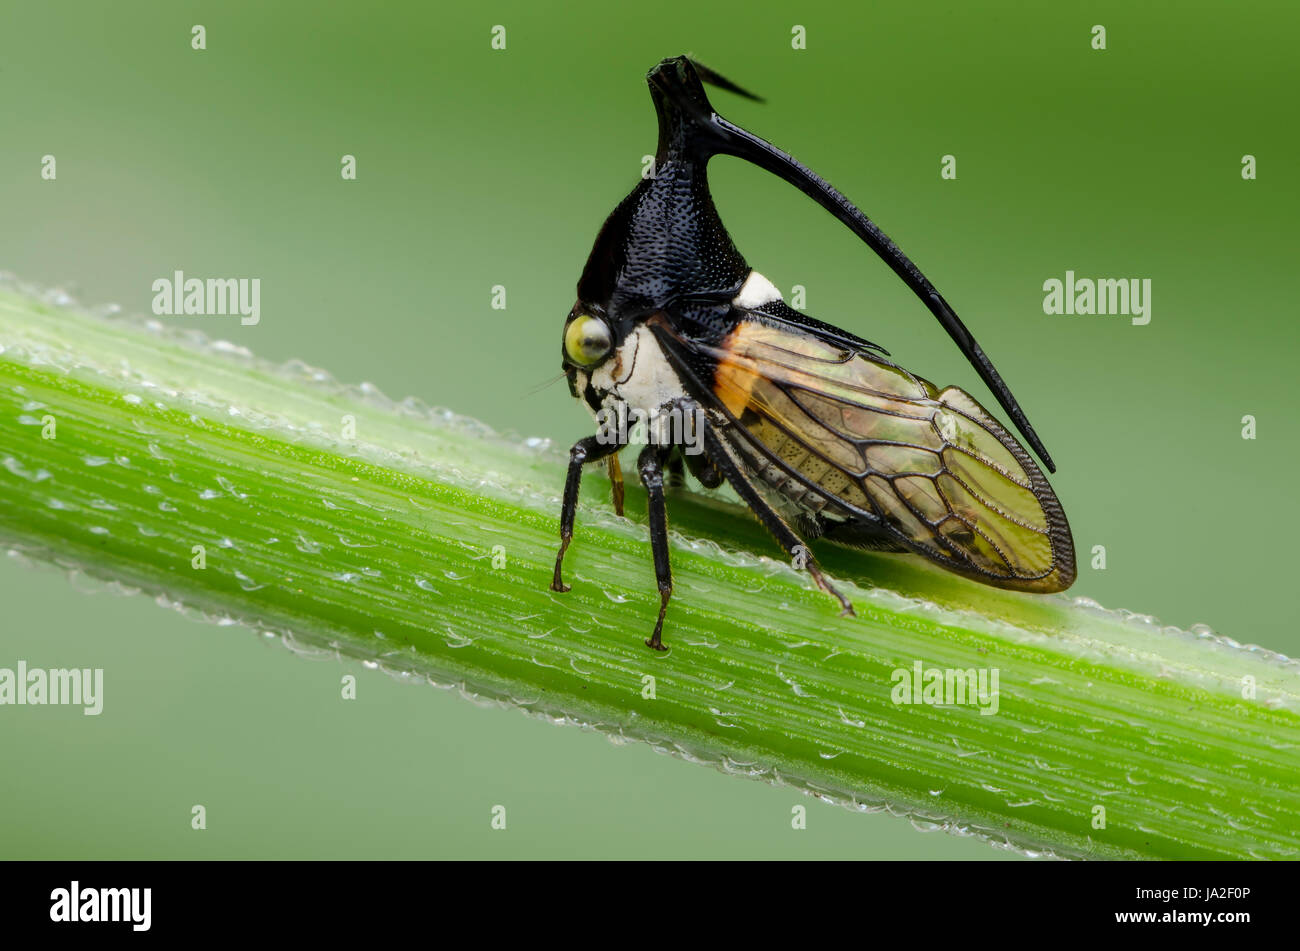 horned tree hopper found in selangor malaysia. - Stock Image